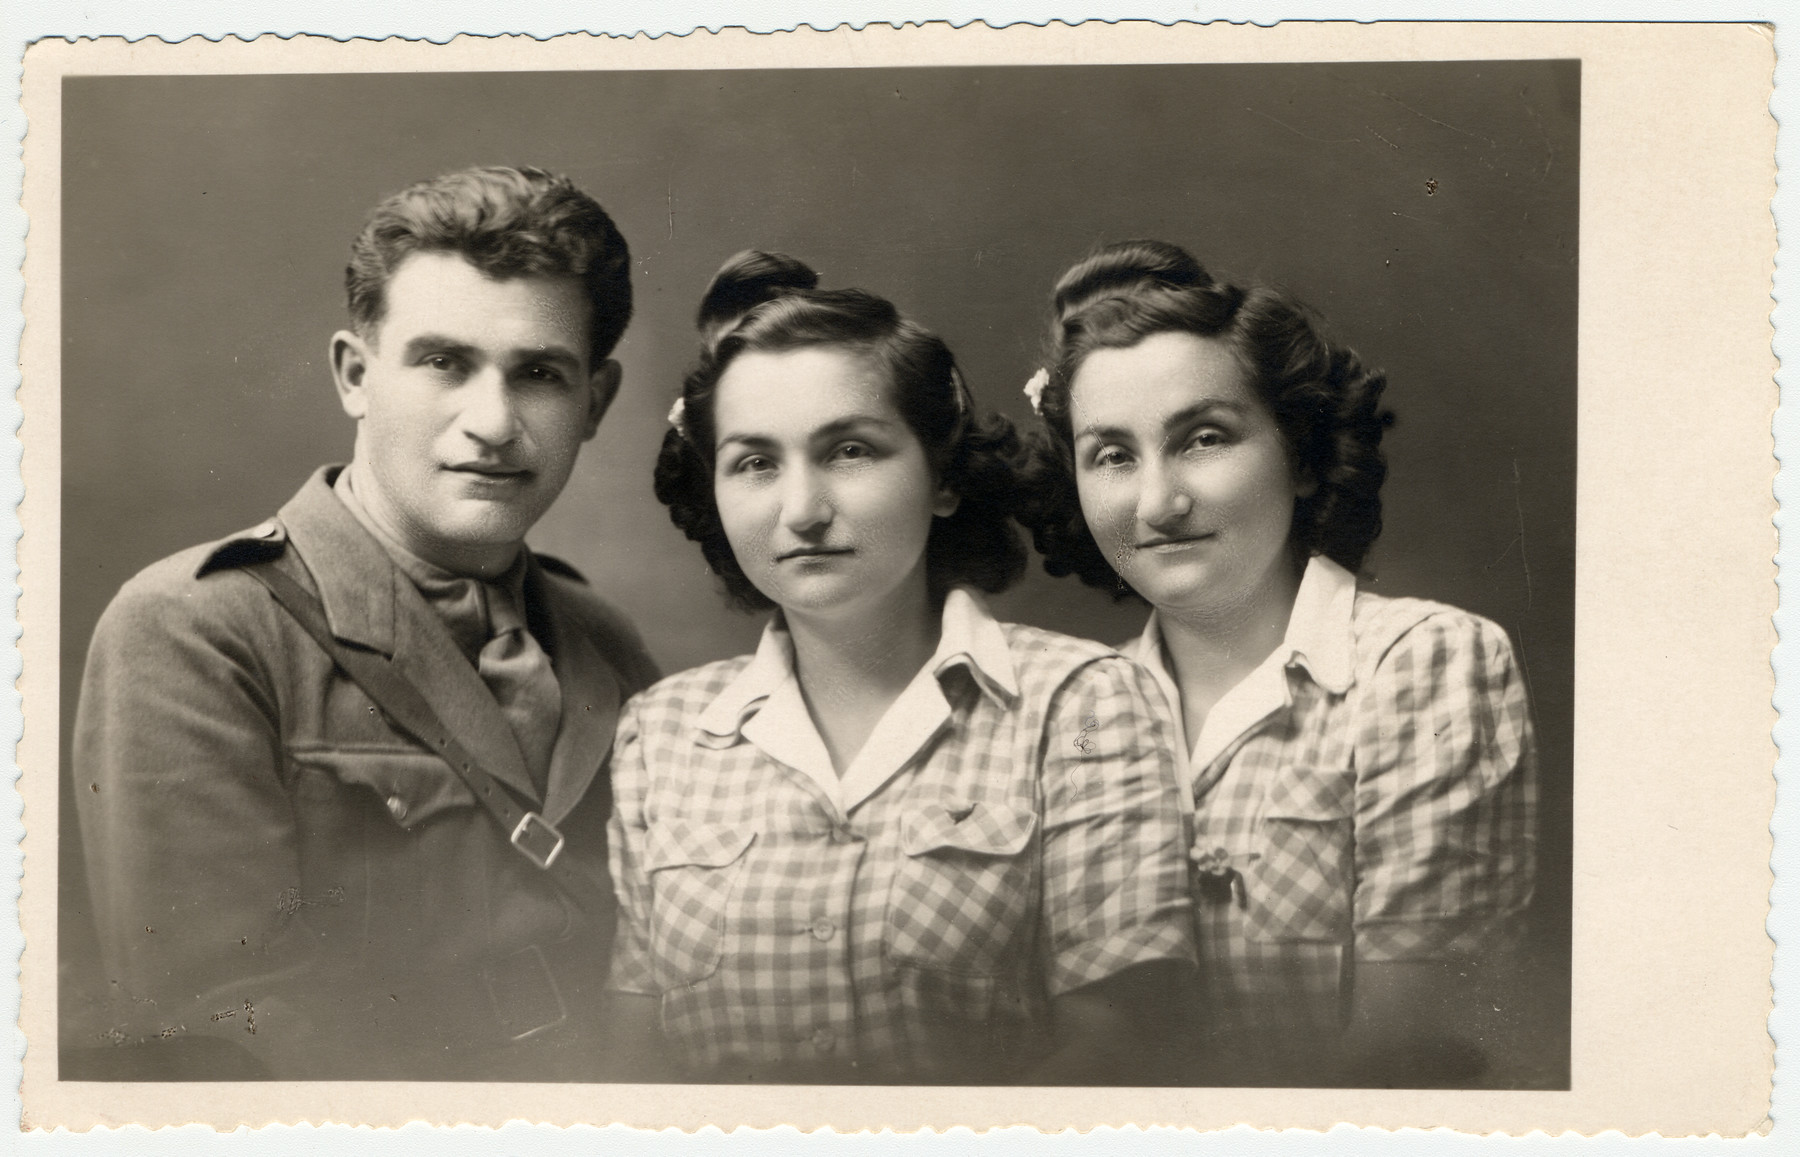 Postwar studio portraif of Pearl and Helen (right) Herskovic who survived the war as Mengele twins and their brother Arno, a soldier in the Czech army.